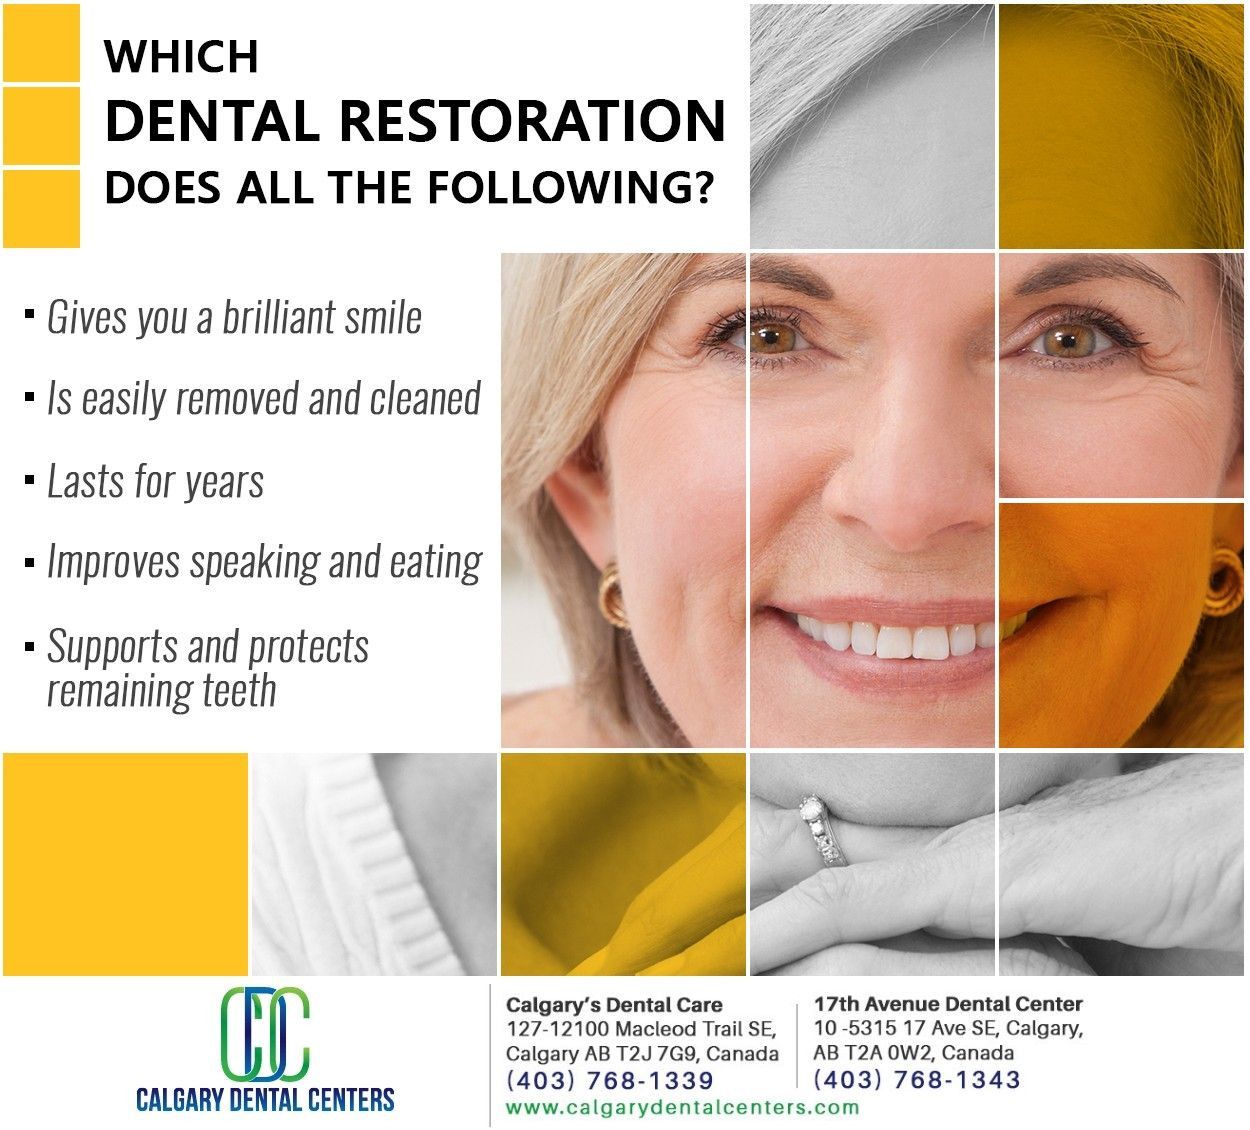 Dentures are the dental restoration that can do all this